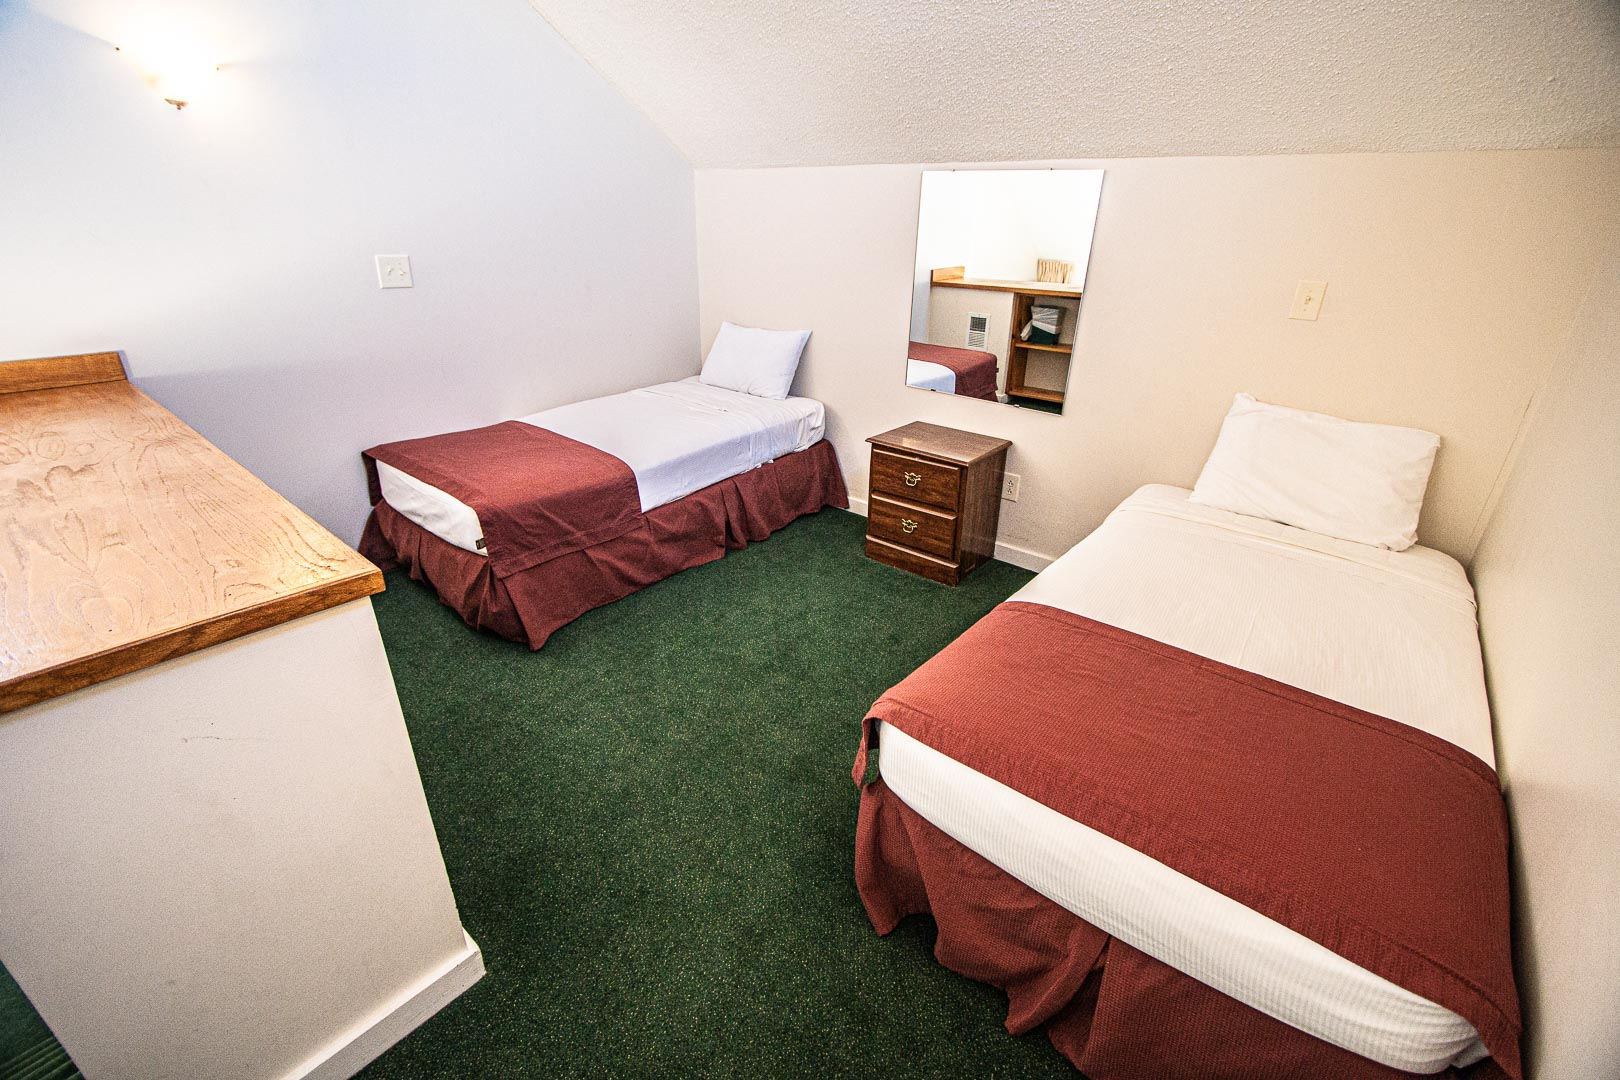 A two bedroom with double beds at VRI's Sandcastle Village in New Bern, North Carolina.